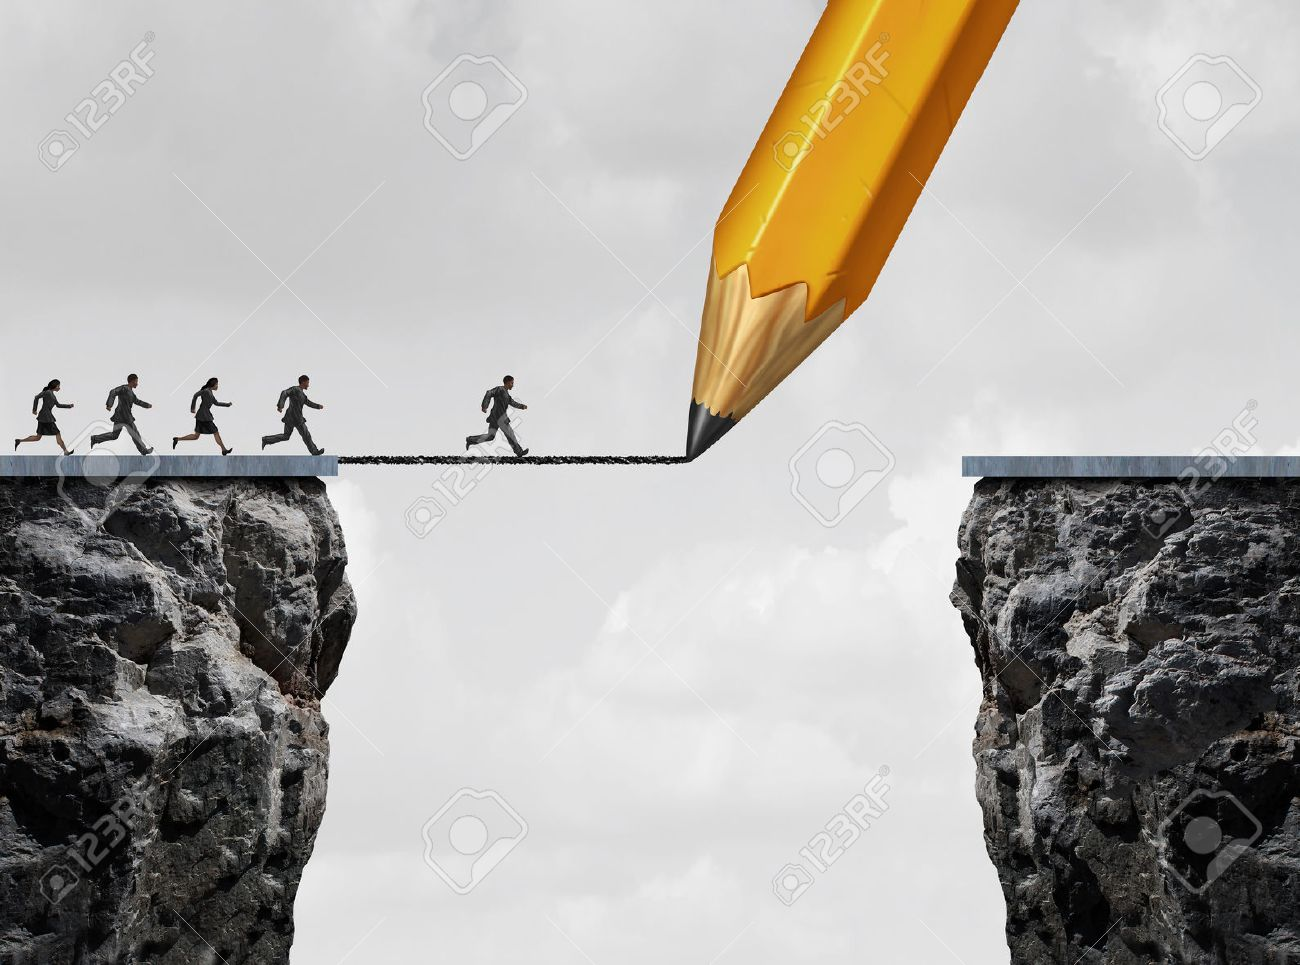 Drawing a bridge and conquering adversity business concept as a group of people running from one cliff to another with the help of a pencil line sketch as a concept for bridging the gap for success. Stock Photo - 49949772